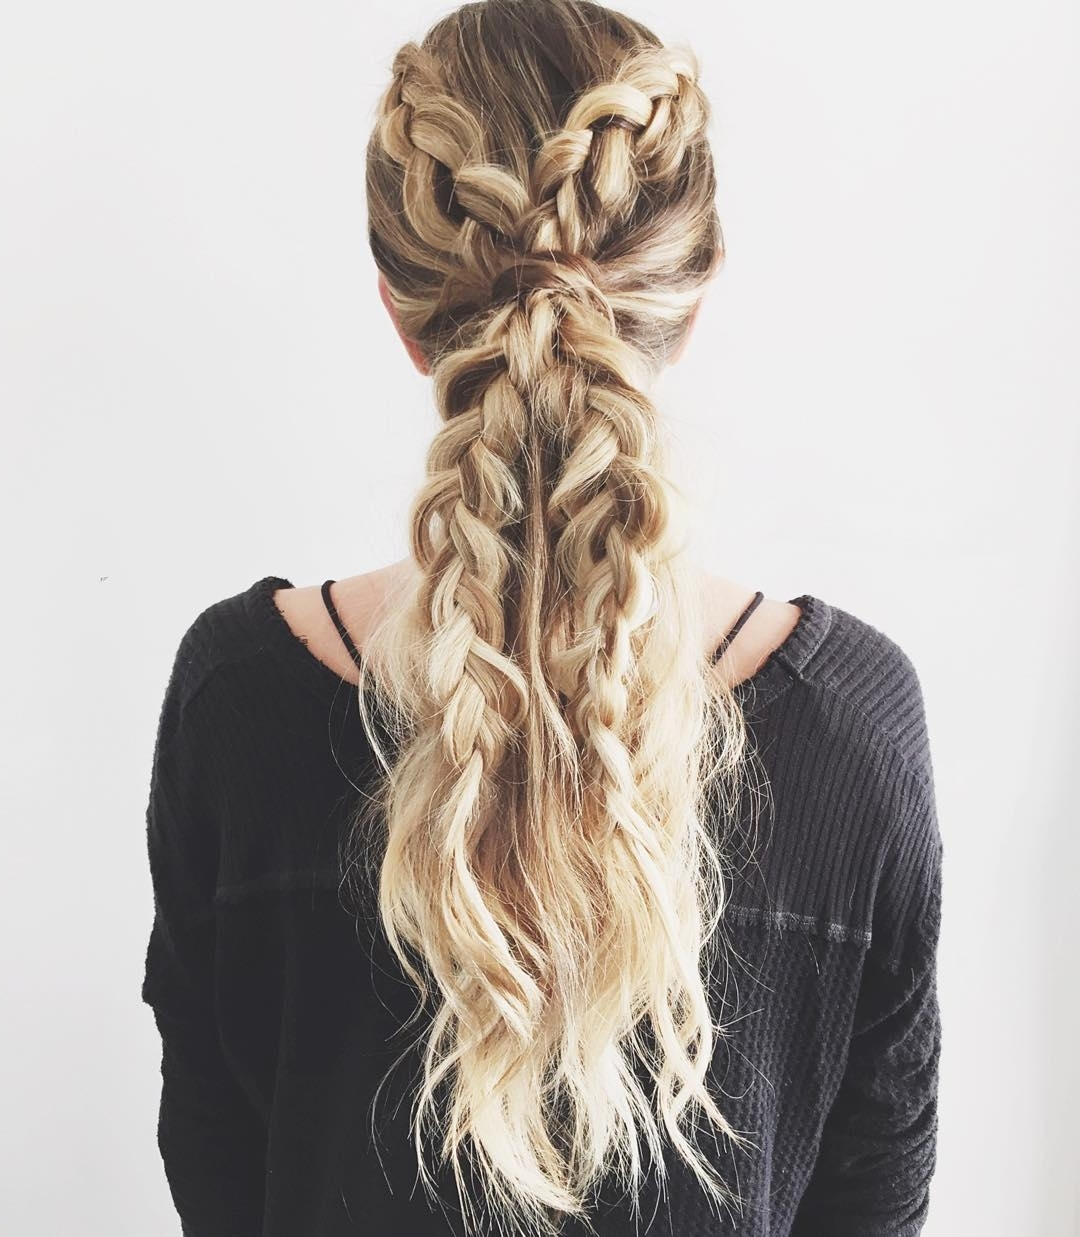 Popular Reverse Braid And Side Ponytail Hairstyles With 30 Braided Ponytail Hairstyles To Slay In  (View 14 of 20)